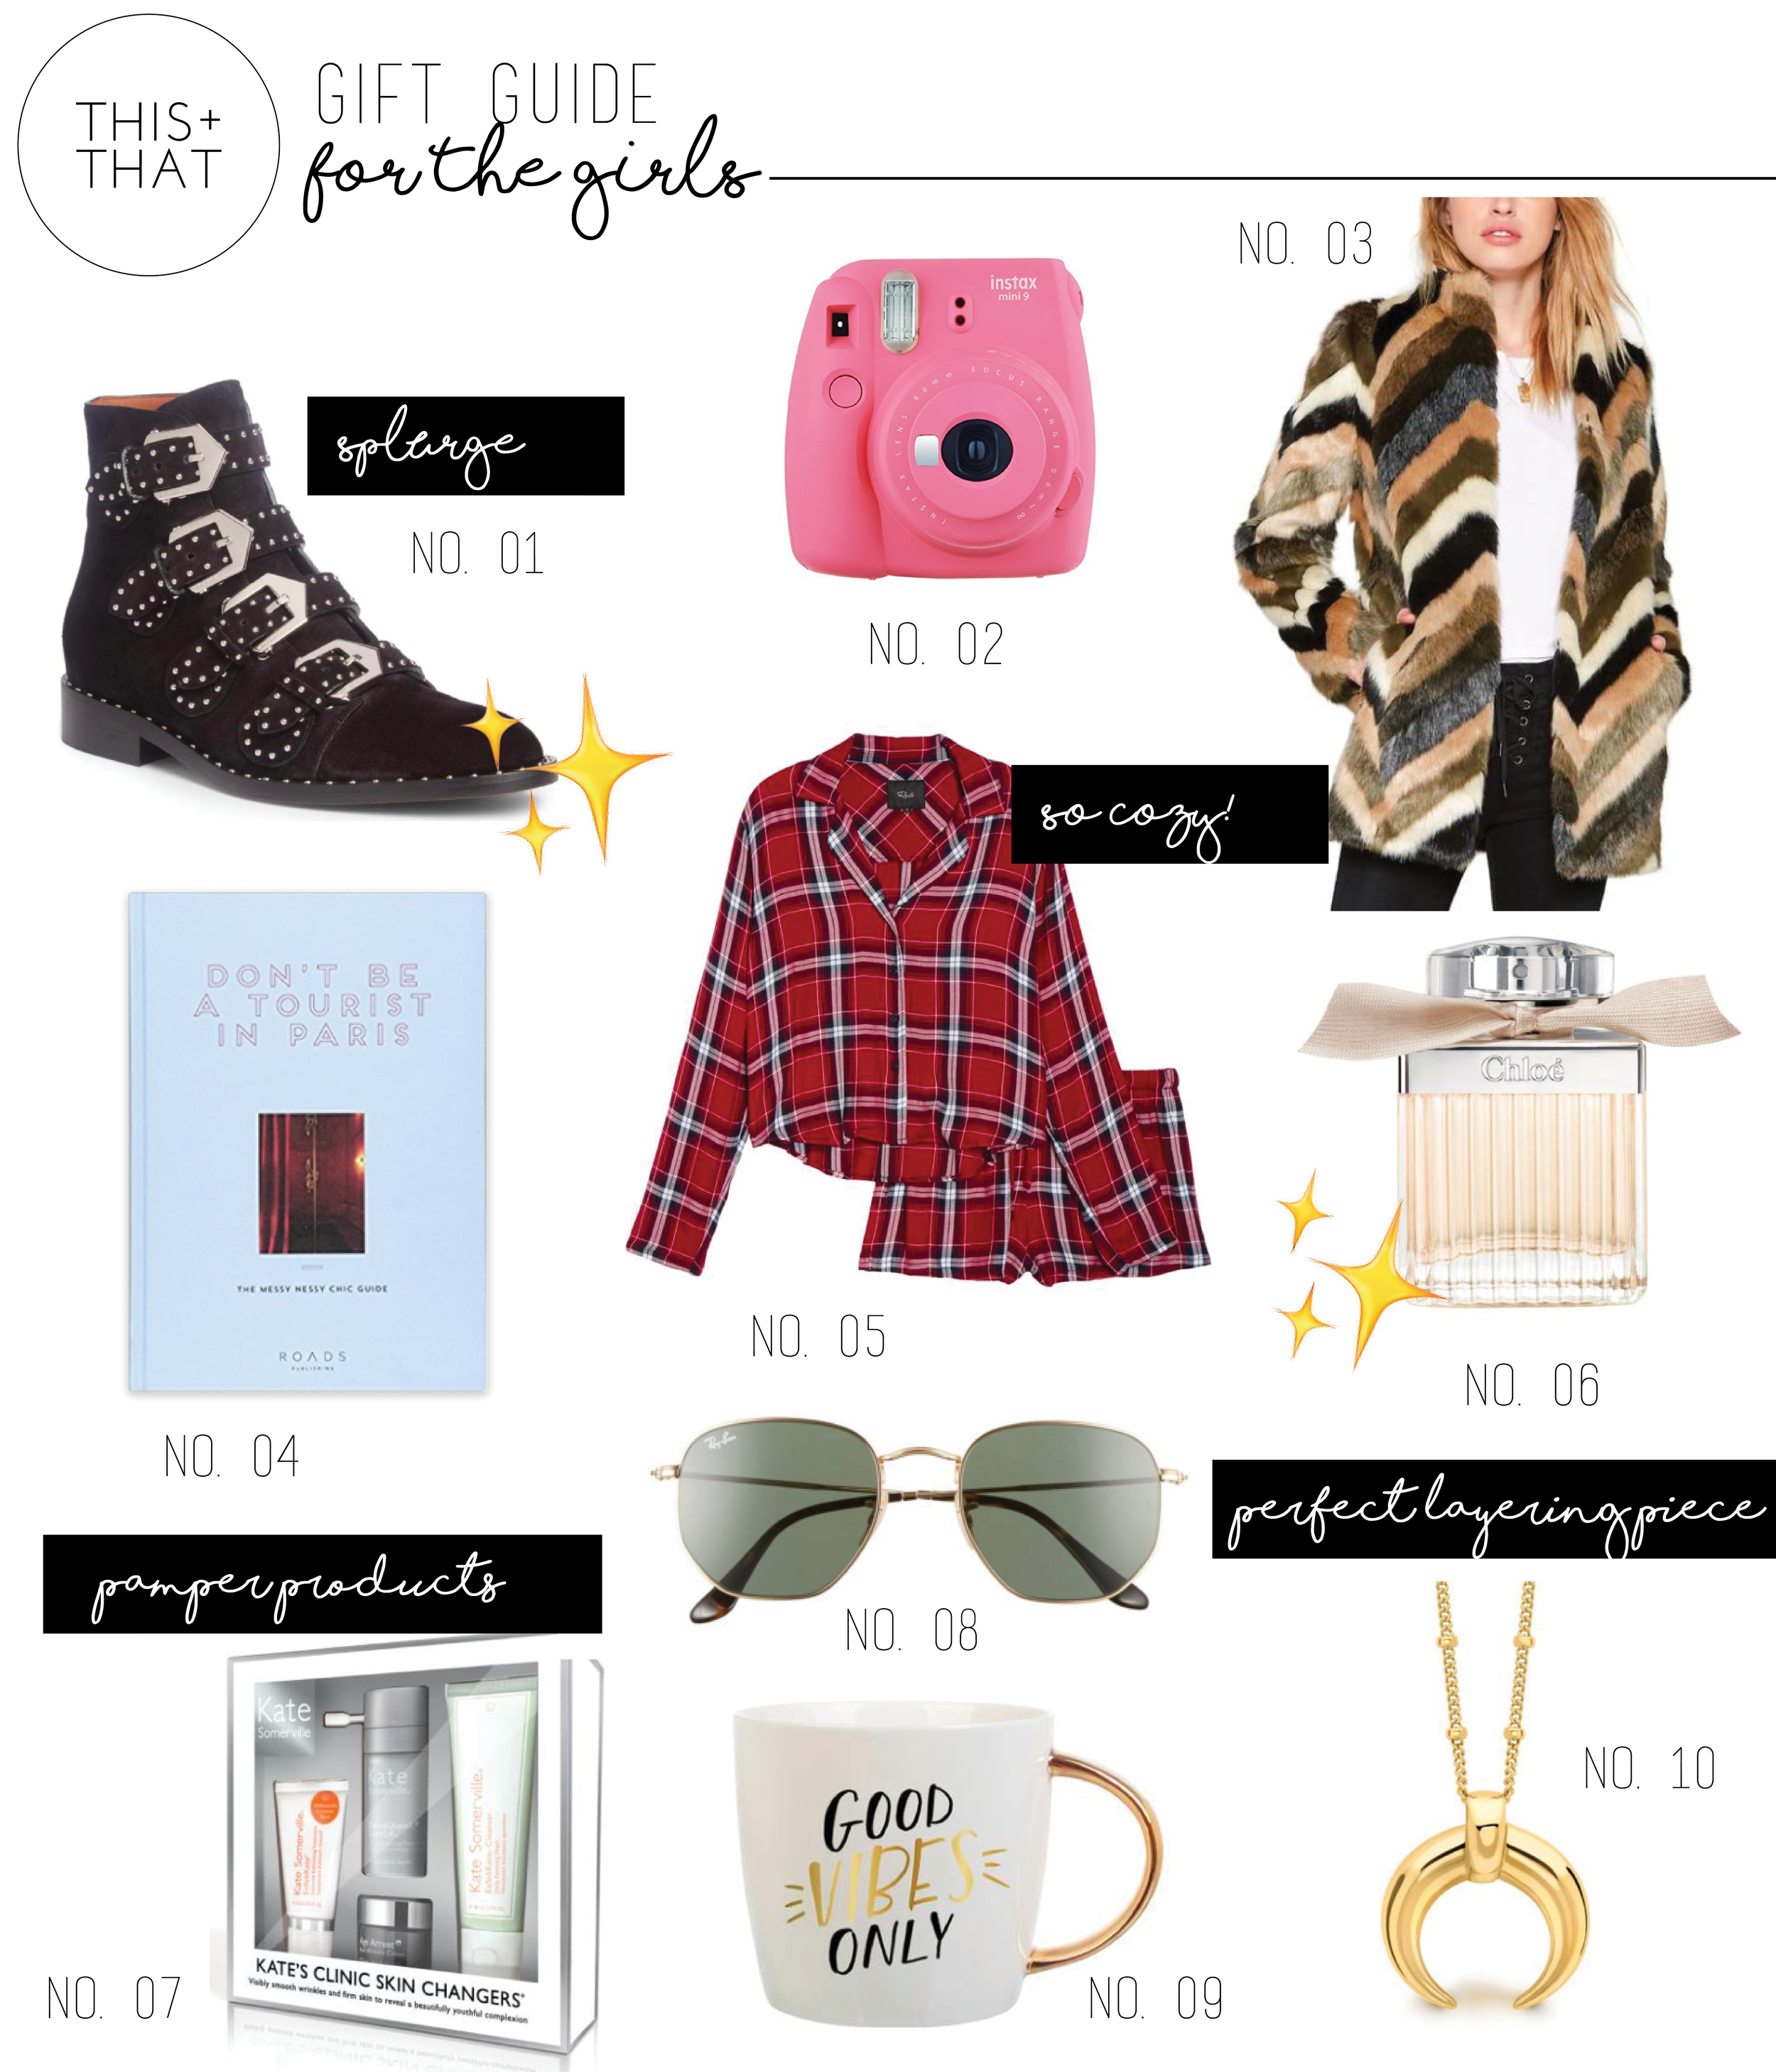 giftguide_girls.png